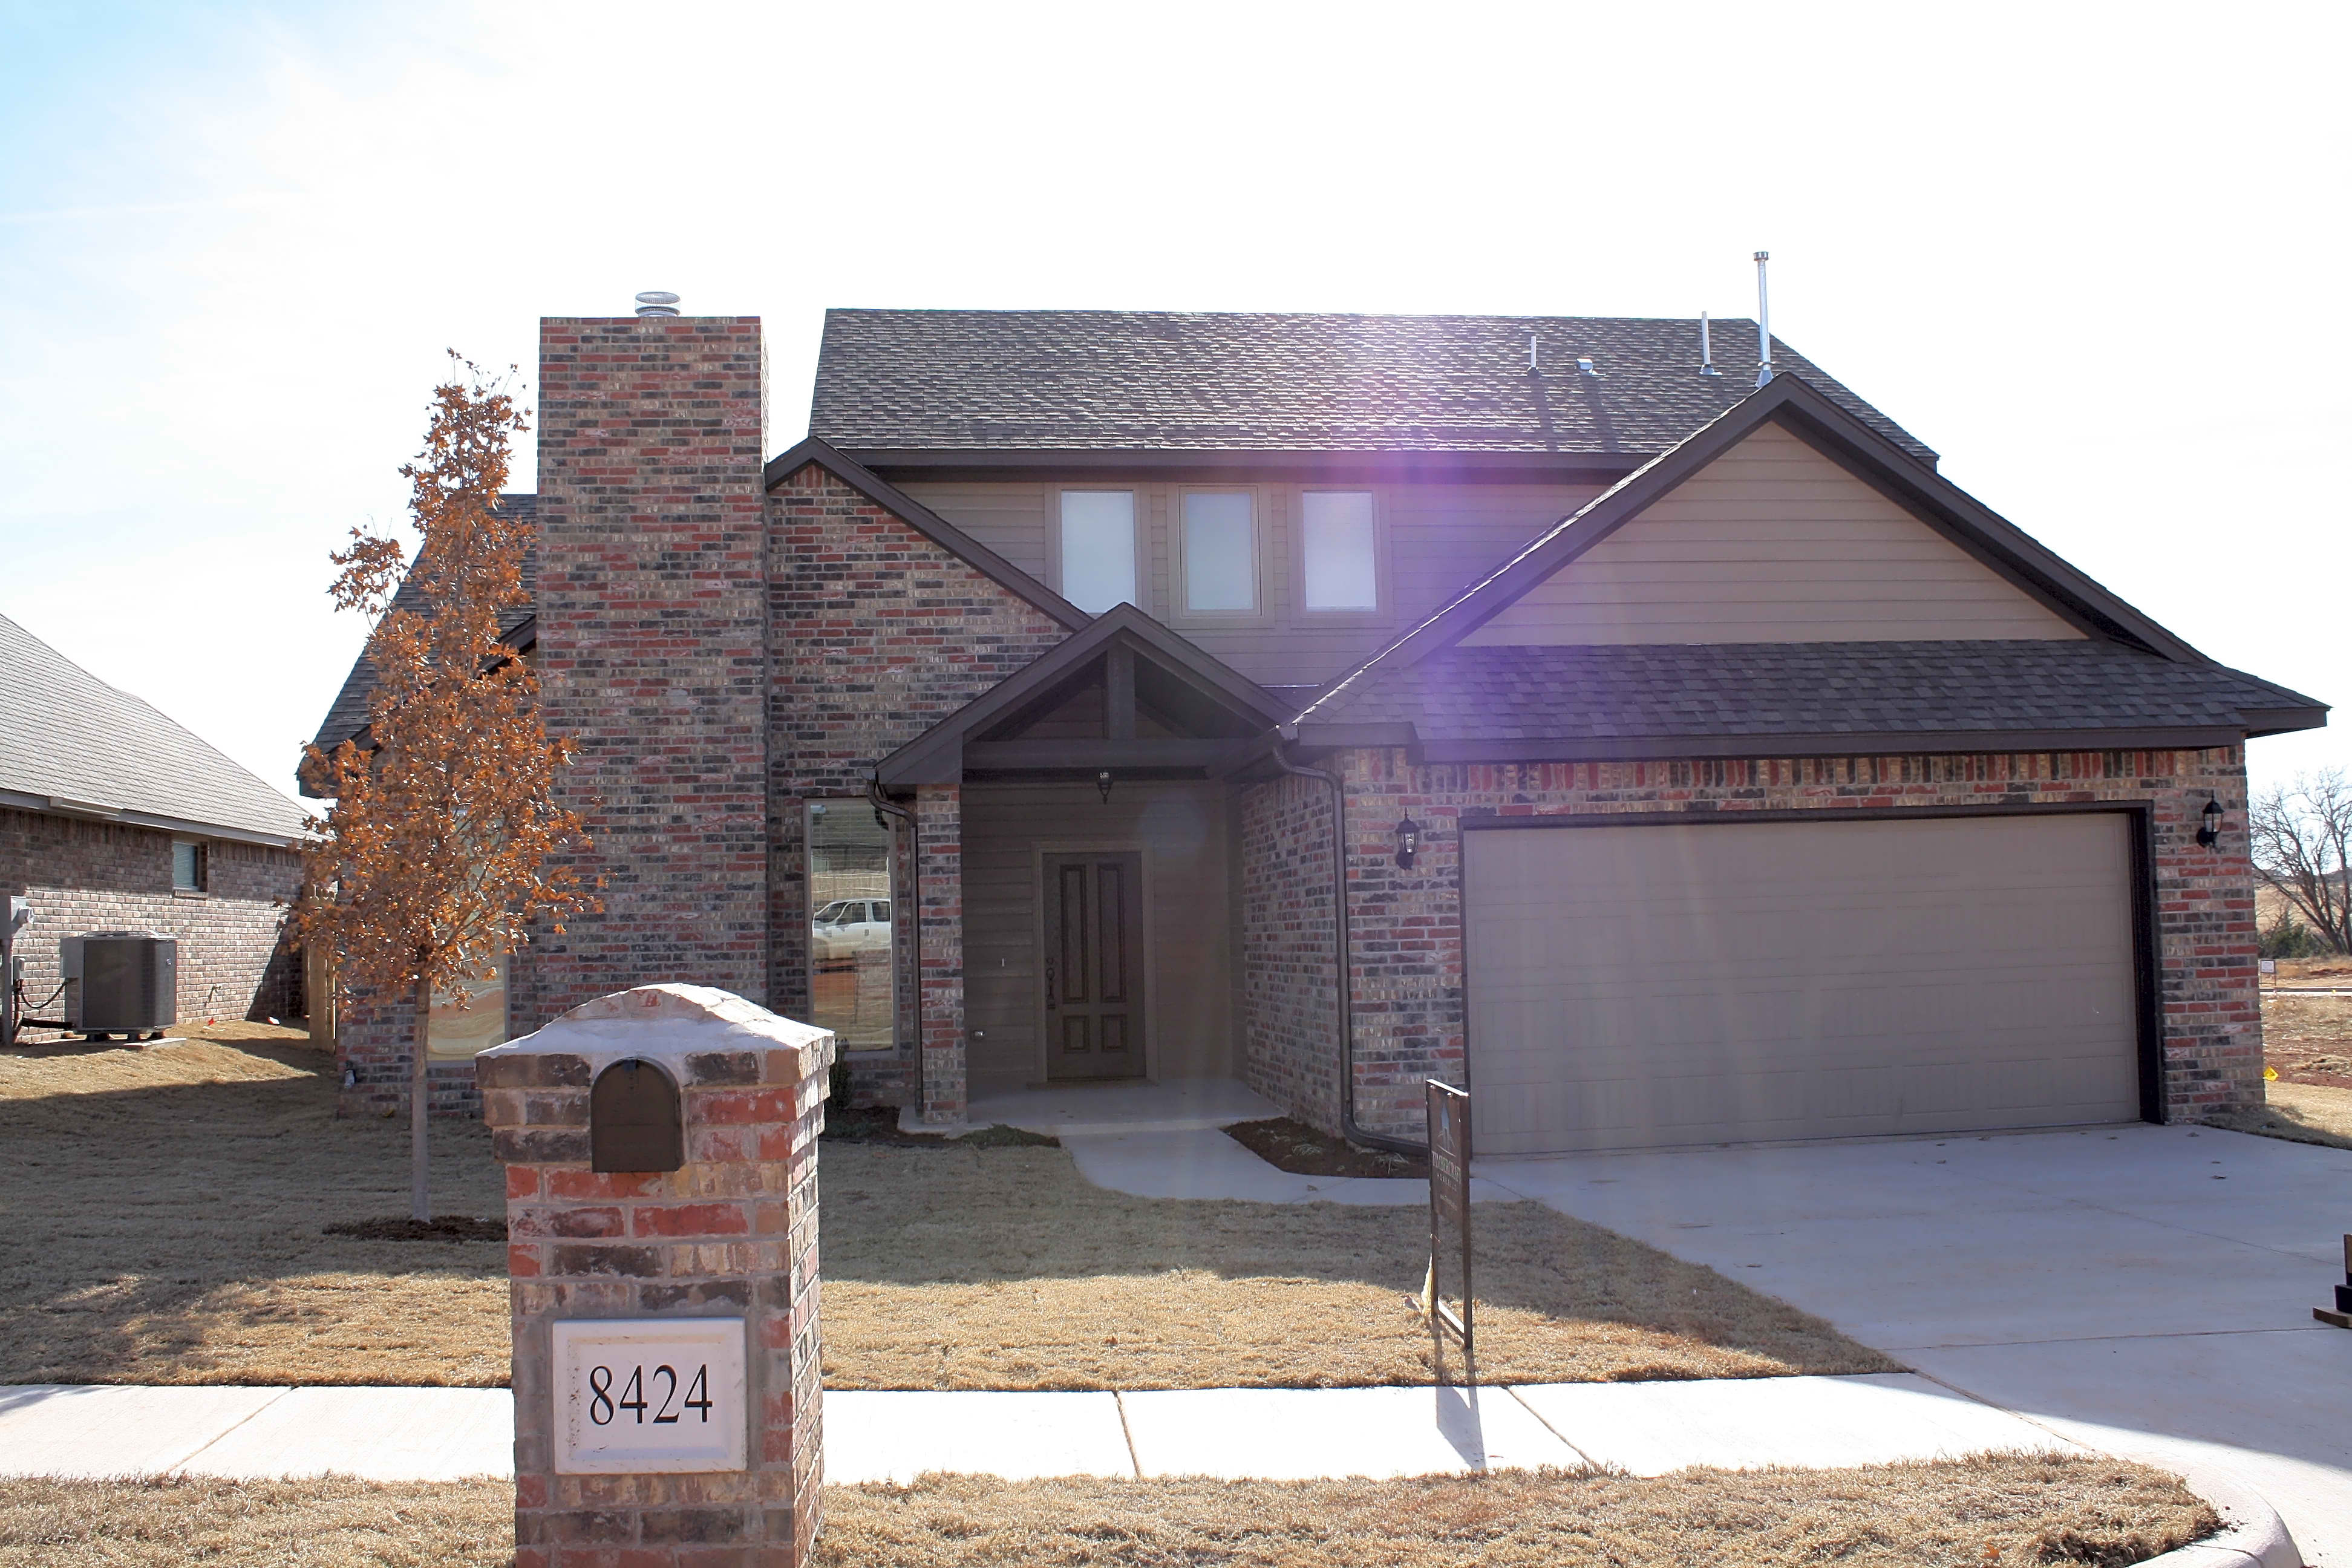 Oklahoma City Houses For Rent Apartments In Oklahoma City Oklahoma Rental Pro